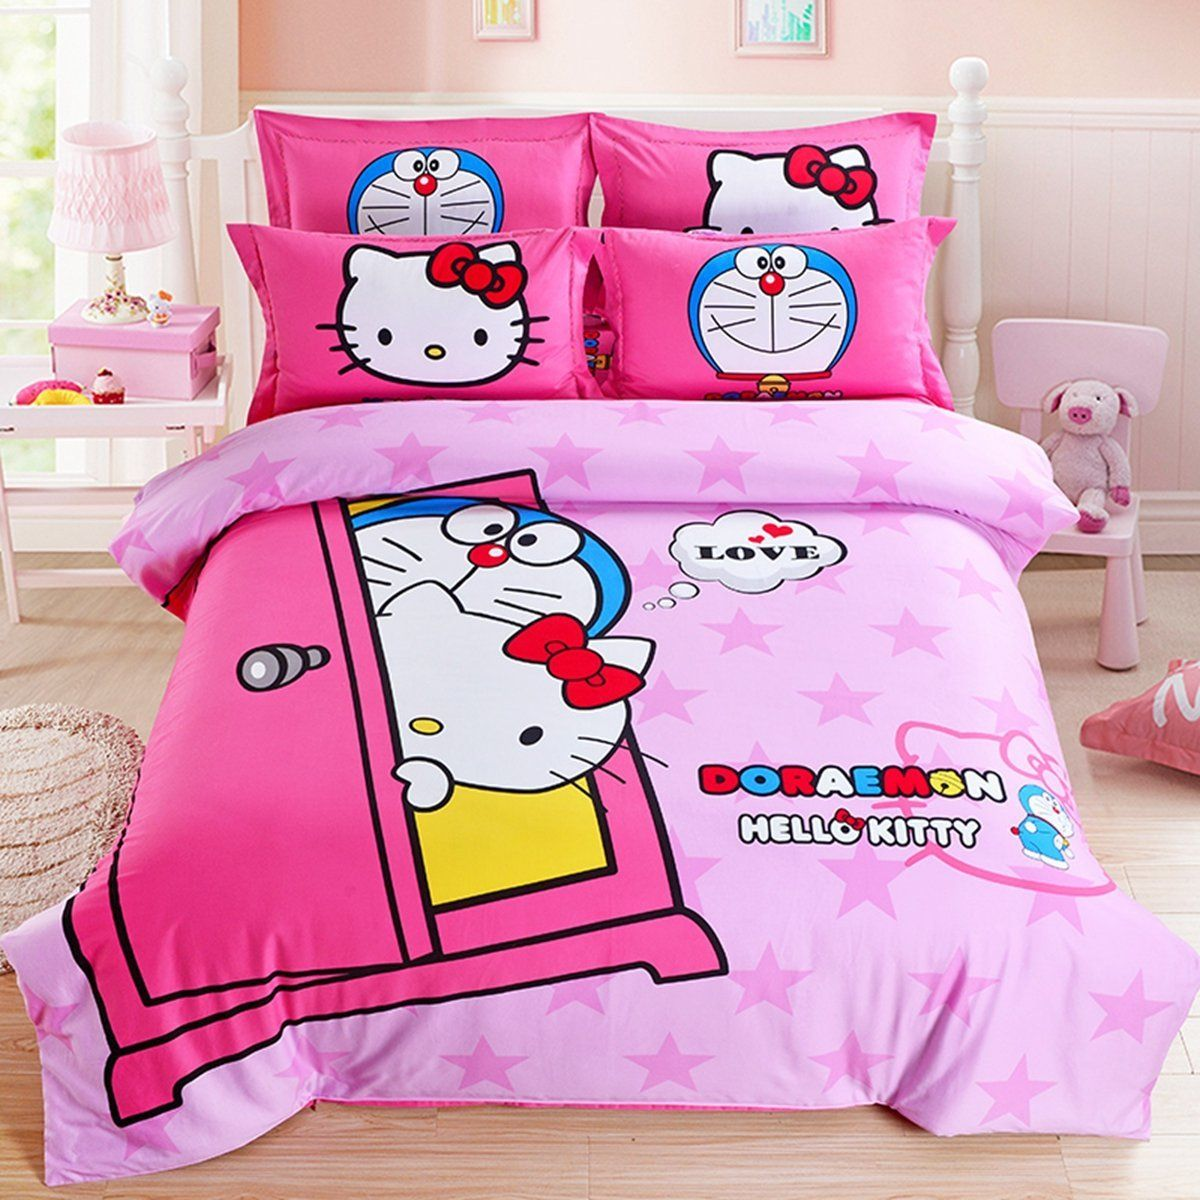 CASA 100 Cotton Brushed Kids bedding Hello Kitty and